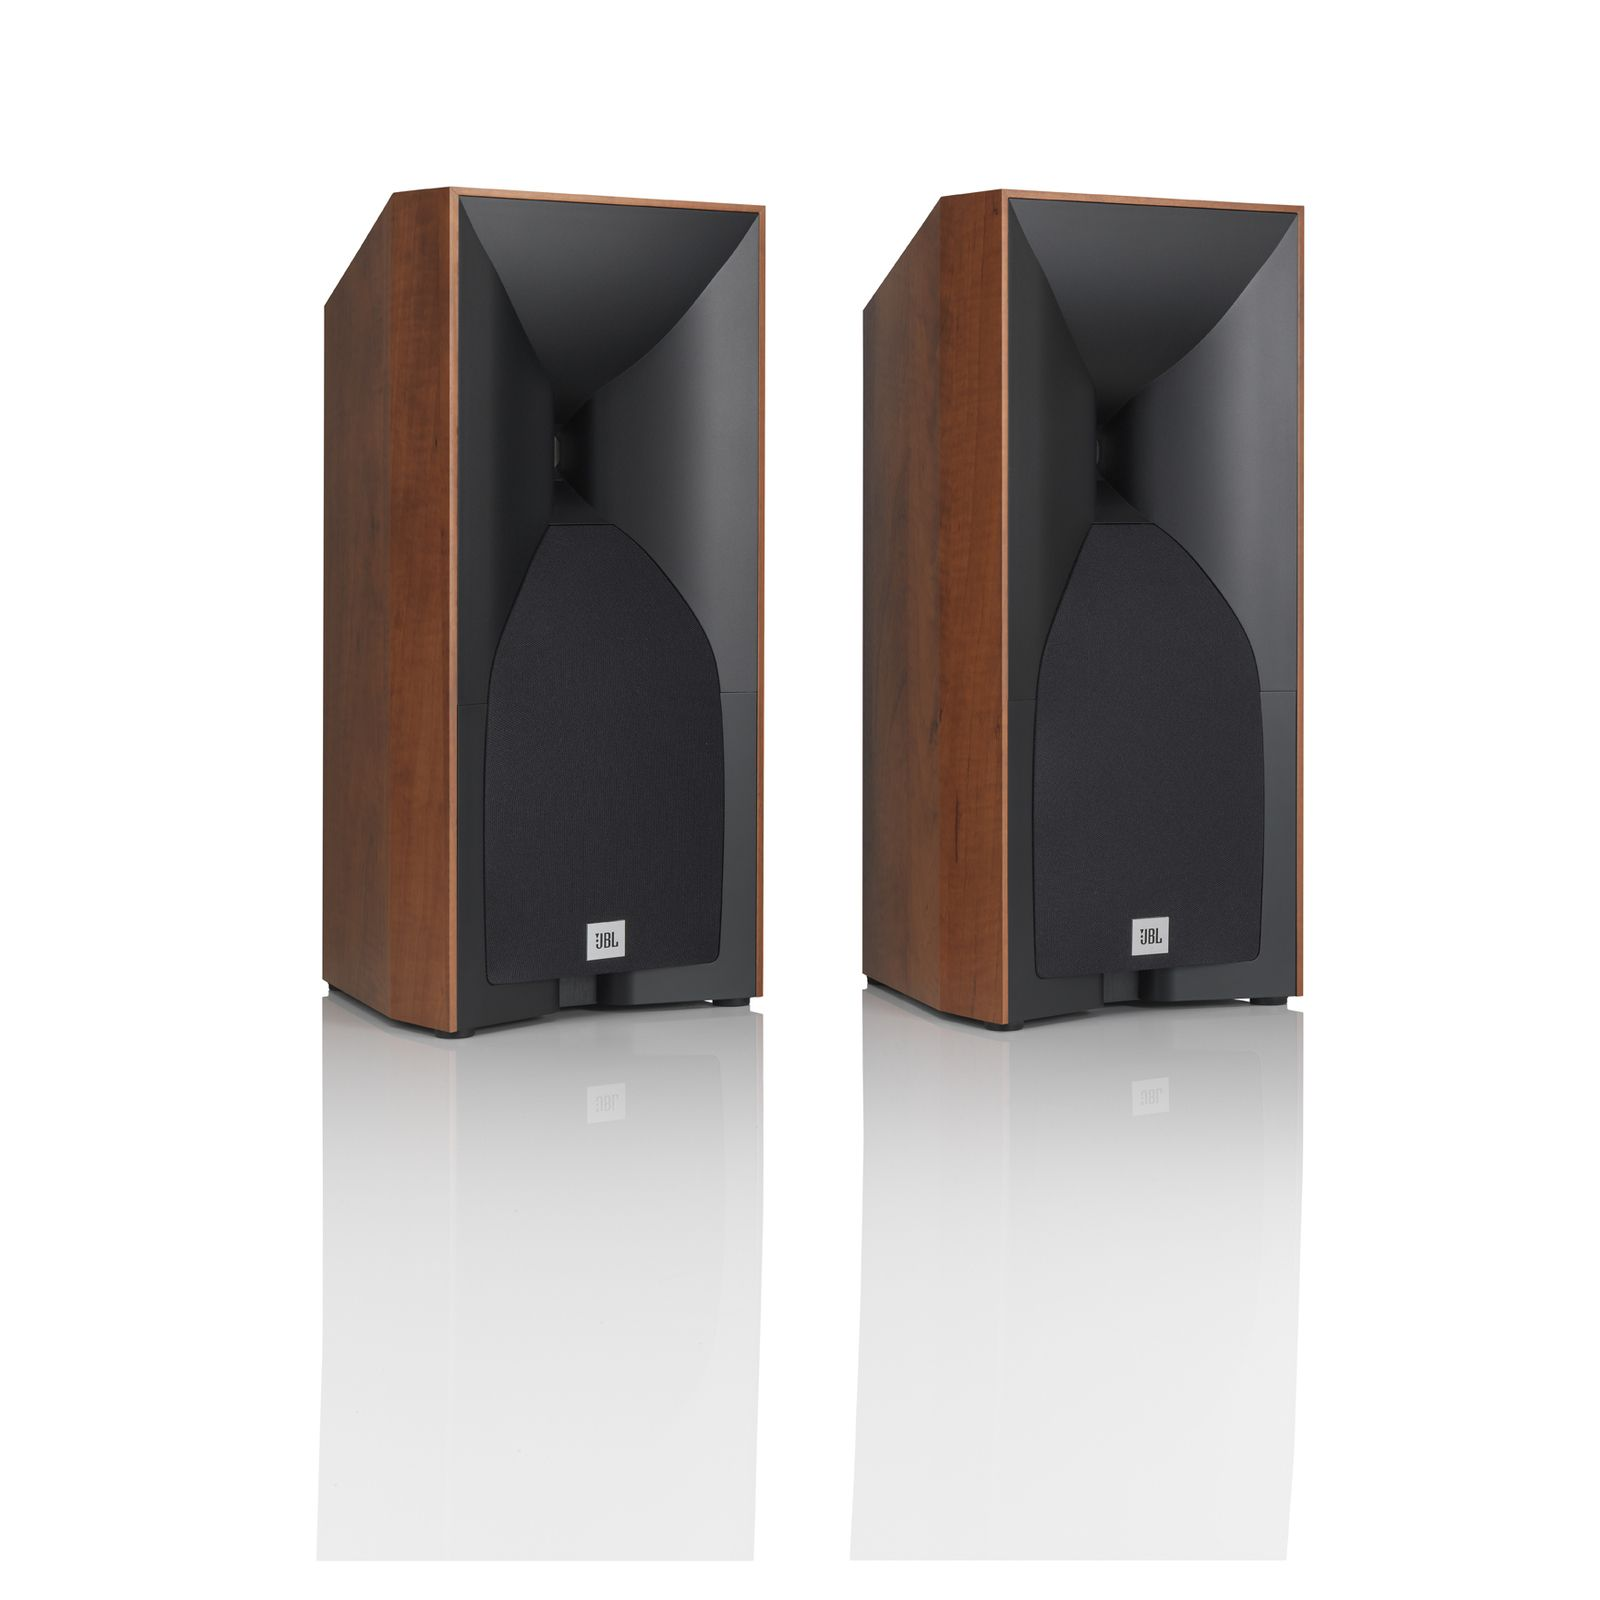 JBL STUDIO 530 CH 2-WAY BOOKSHELF LOUDSPEAKERS IN CHERRY JBL STU